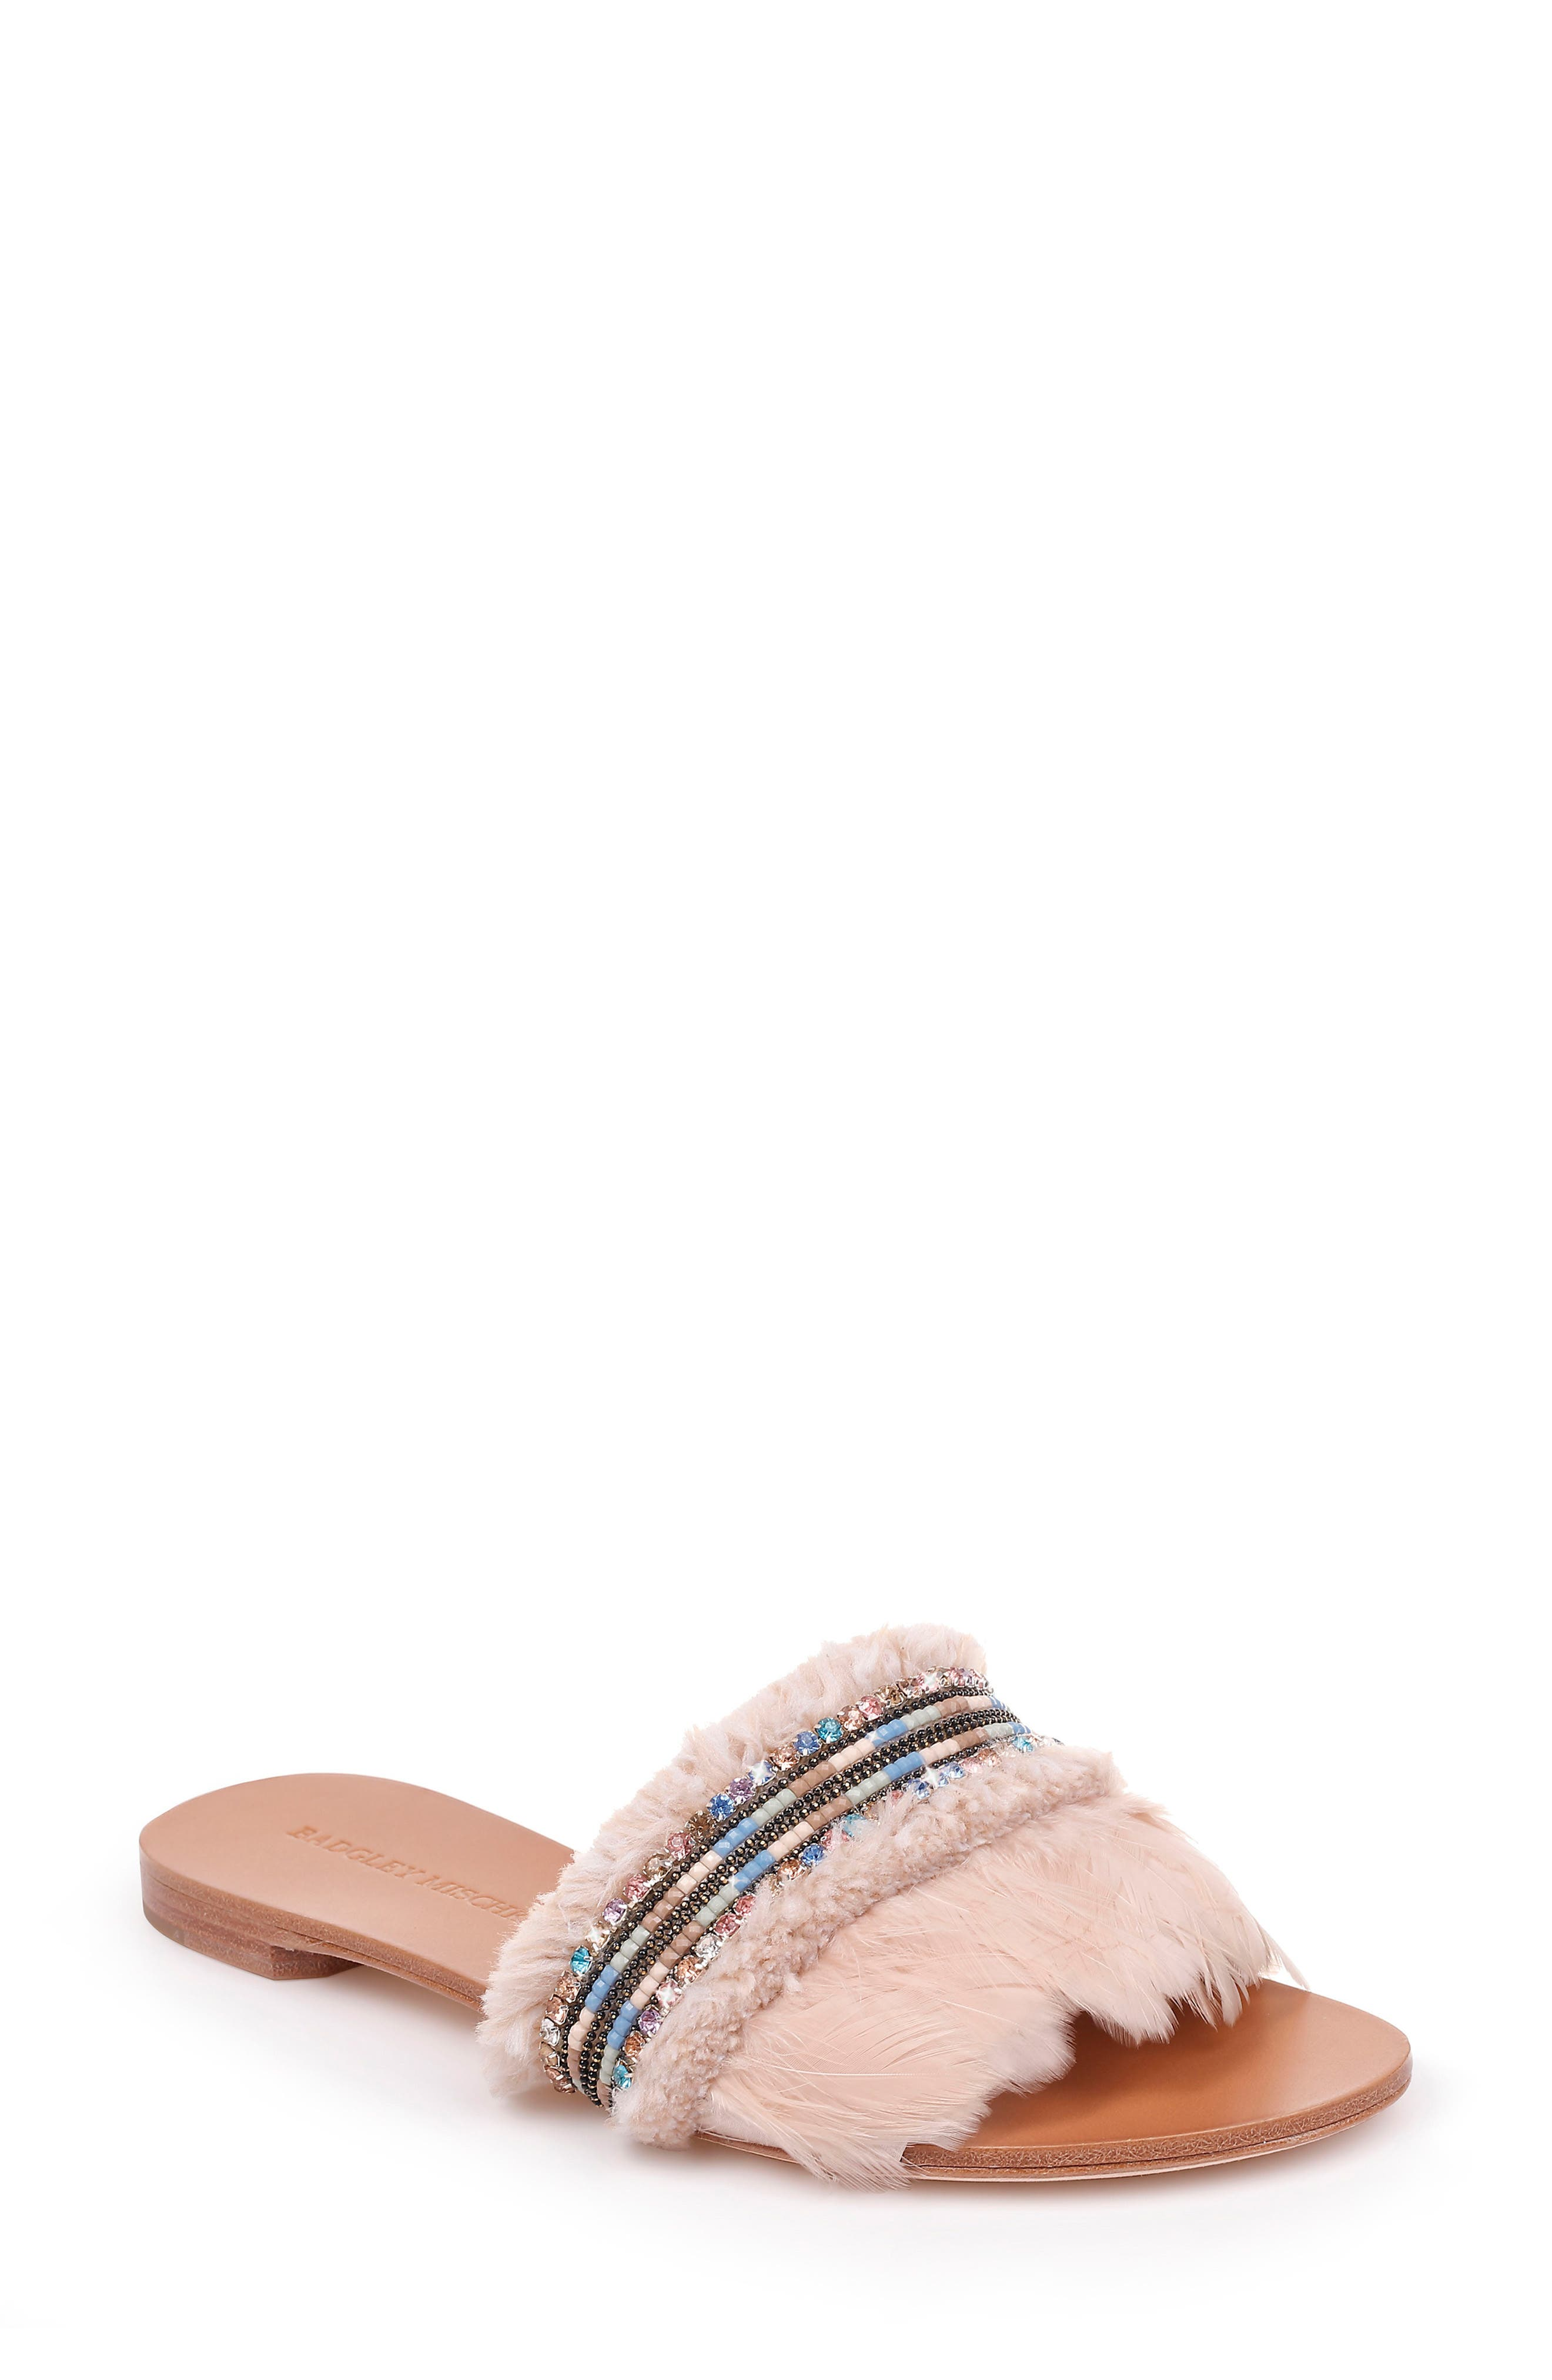 Badgley Mischka Fortune Embellished Slide Sandal- Beige